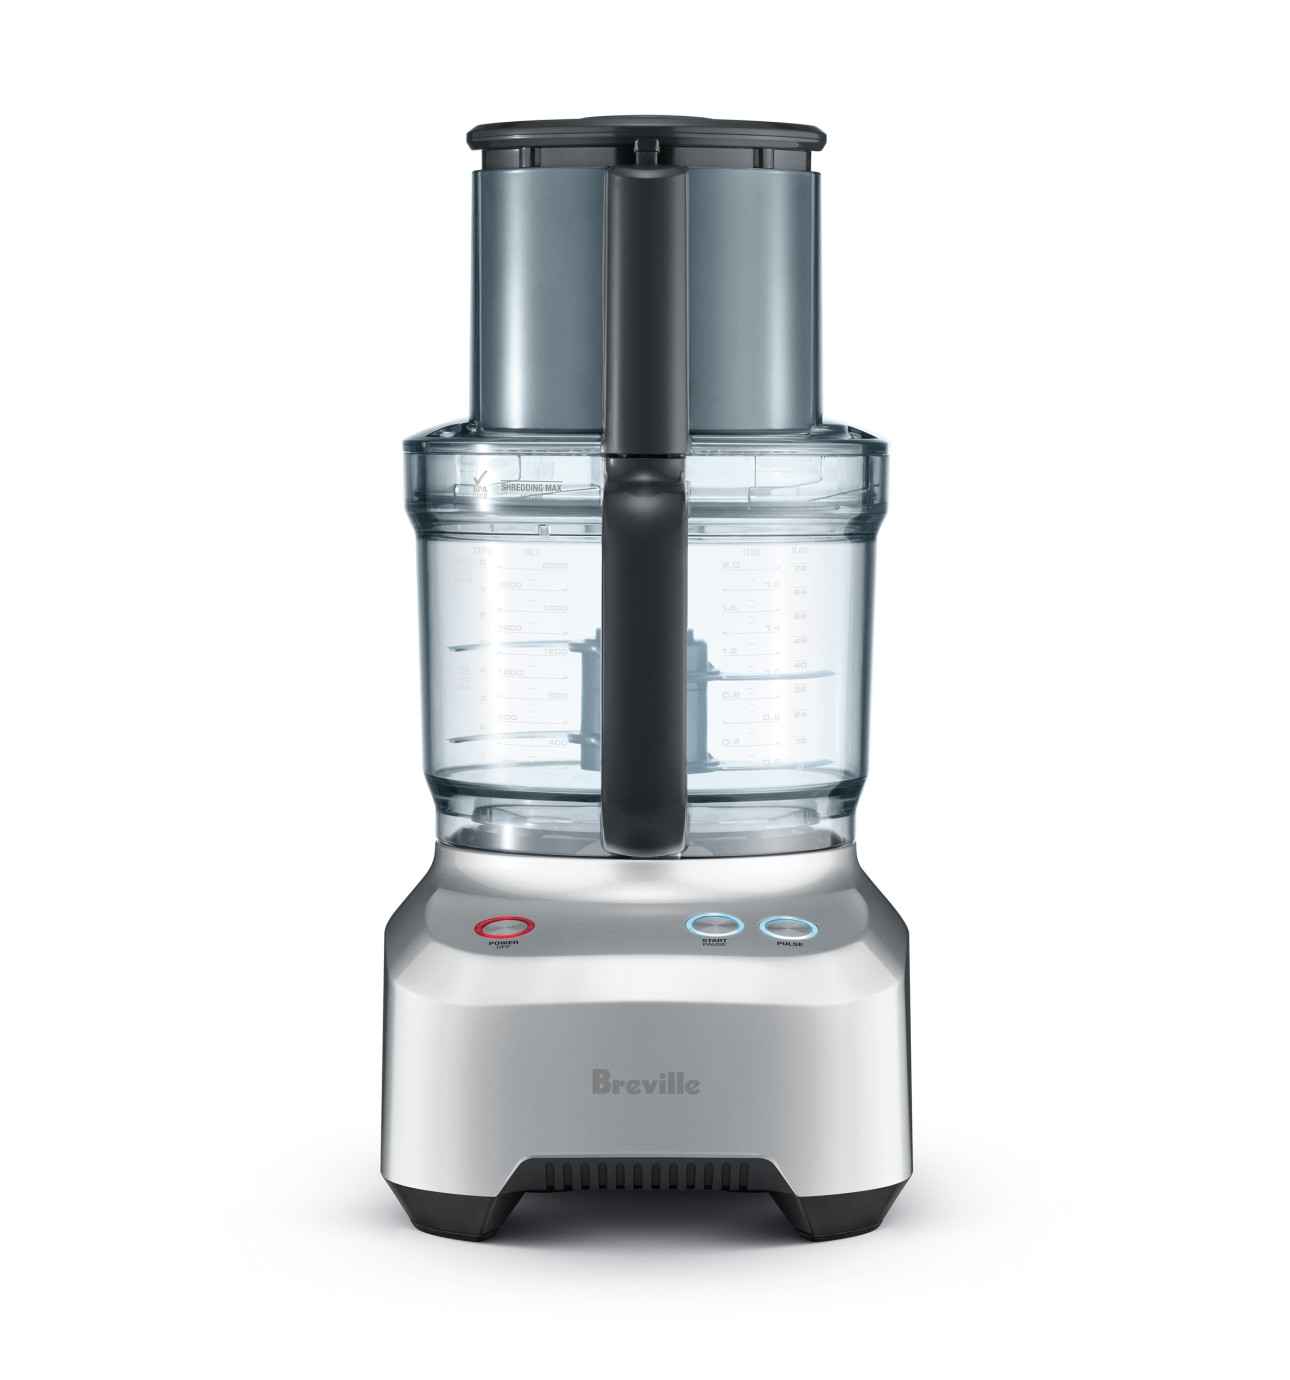 Uncategorized David Jones Kitchen Appliances breville shop kitchen appliances online david jones bfp660sil the wizz